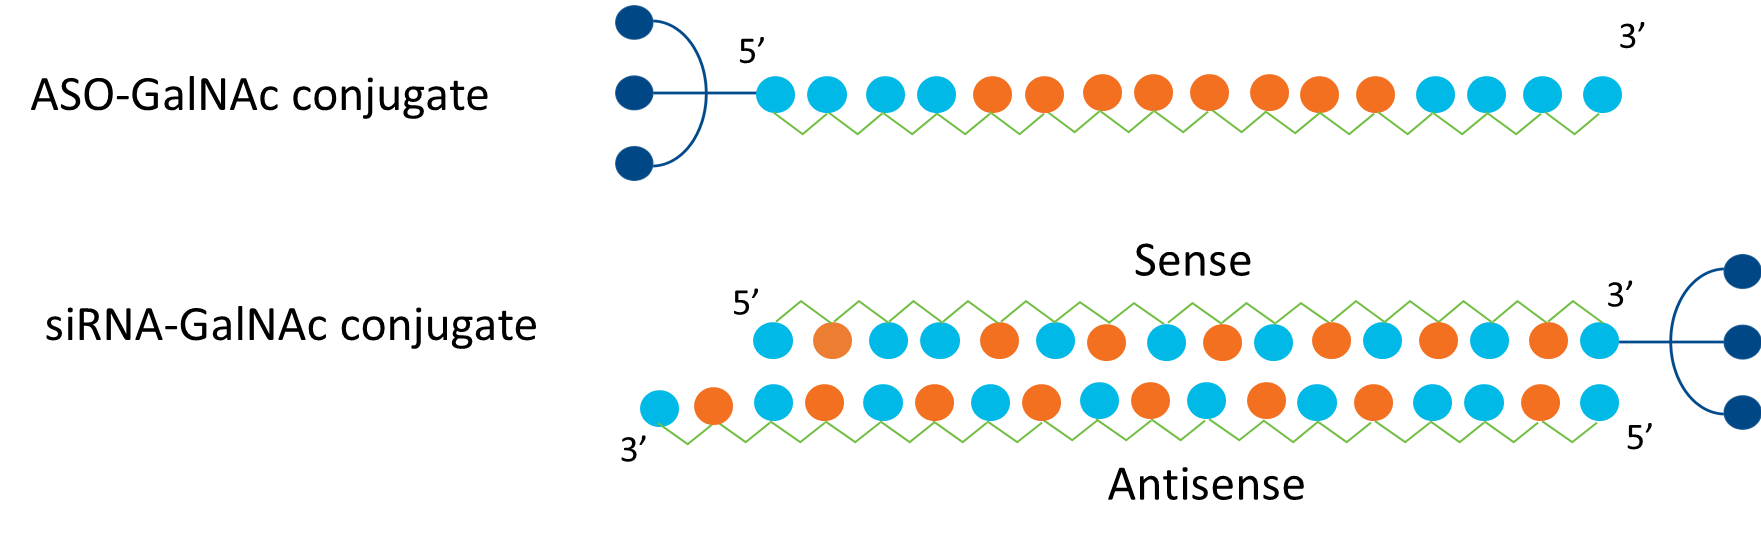 Structure Of Givosiran